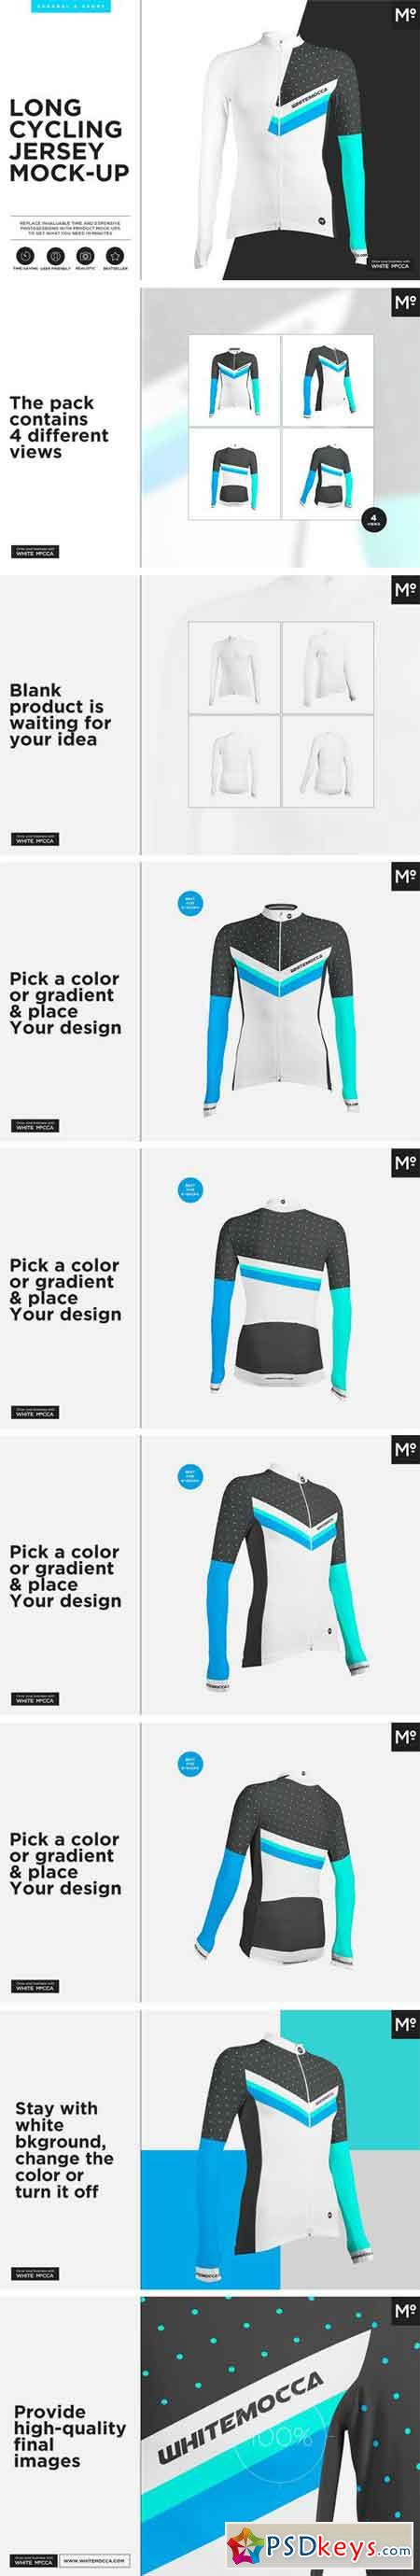 Jersey » Free Download Photoshop Vector Stock image Via